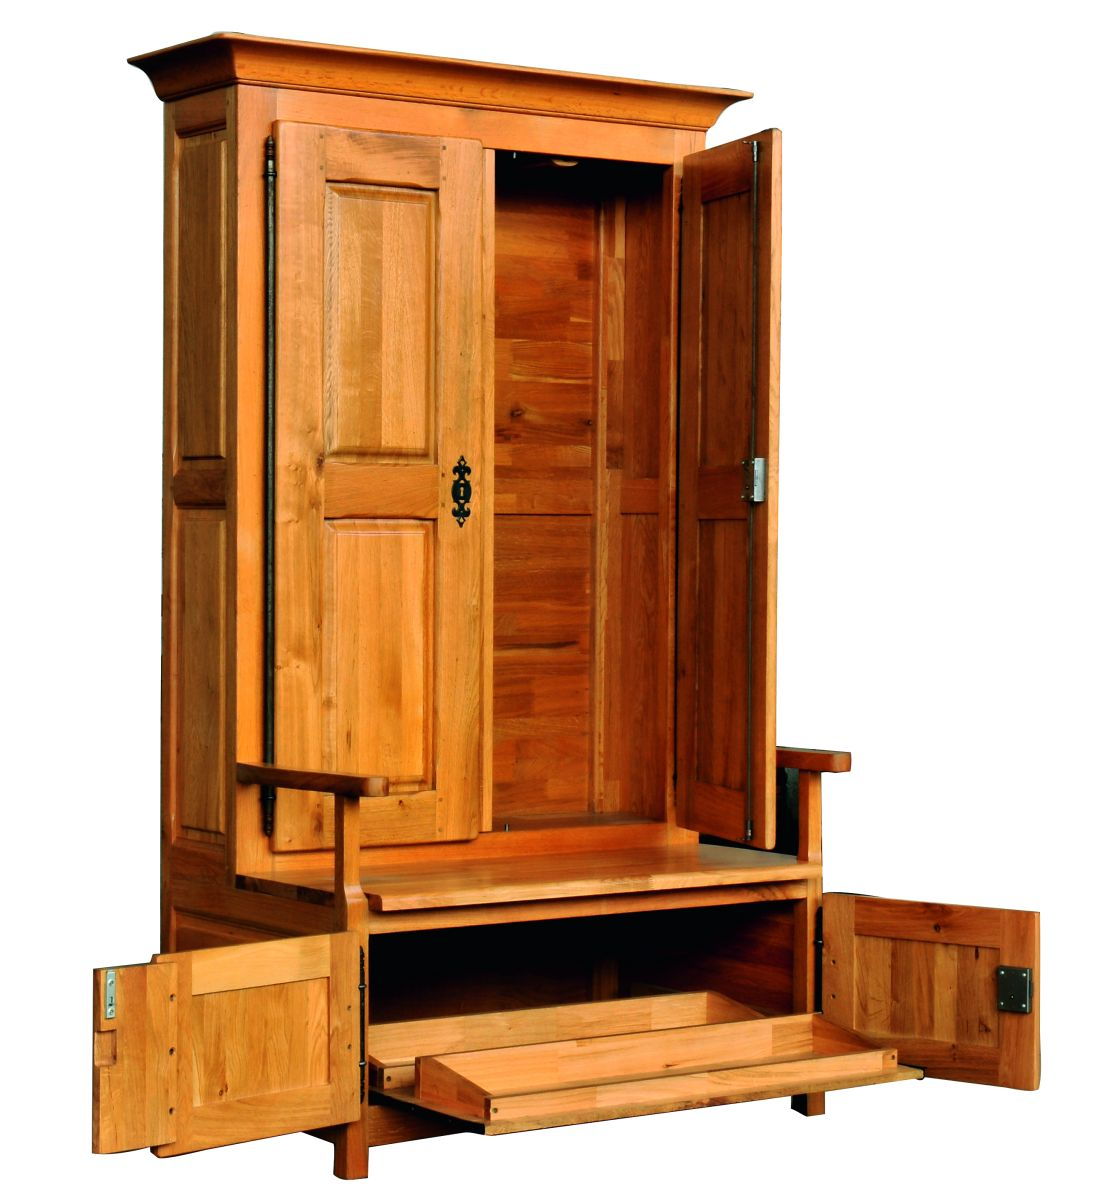 Solid Oak Wardrobe, 4 Doors